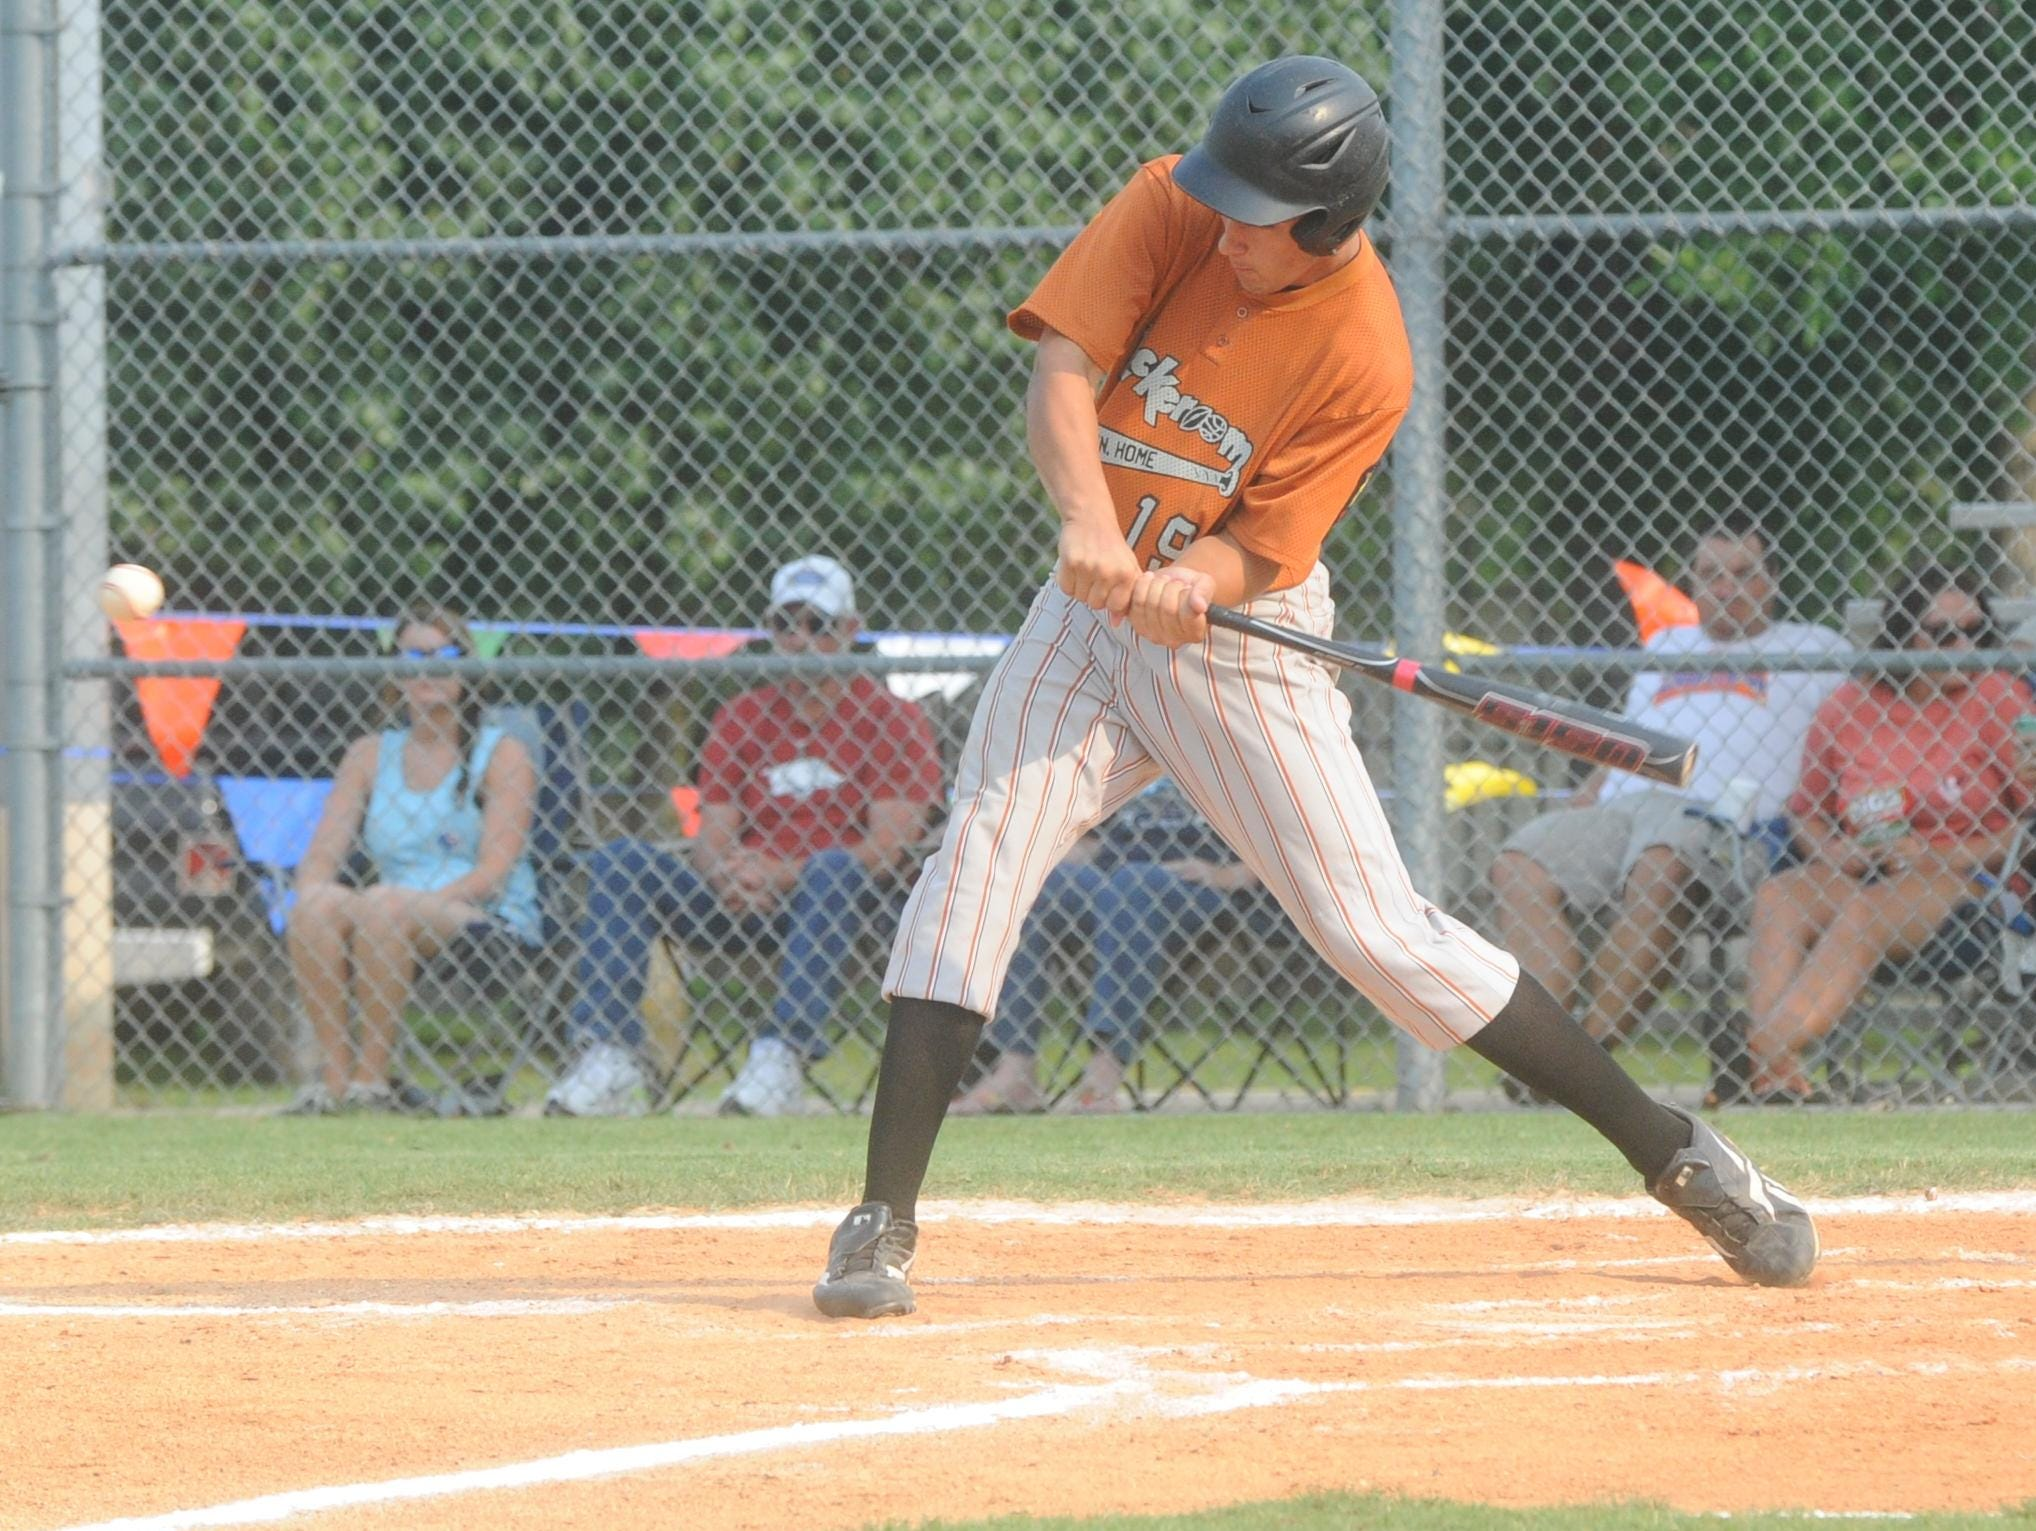 Lockeroom's Jake Berton swings at a pitch during the first game of Mountain Home's doubleheader sweep of Batesville on Tuesday night at Cooper Park.